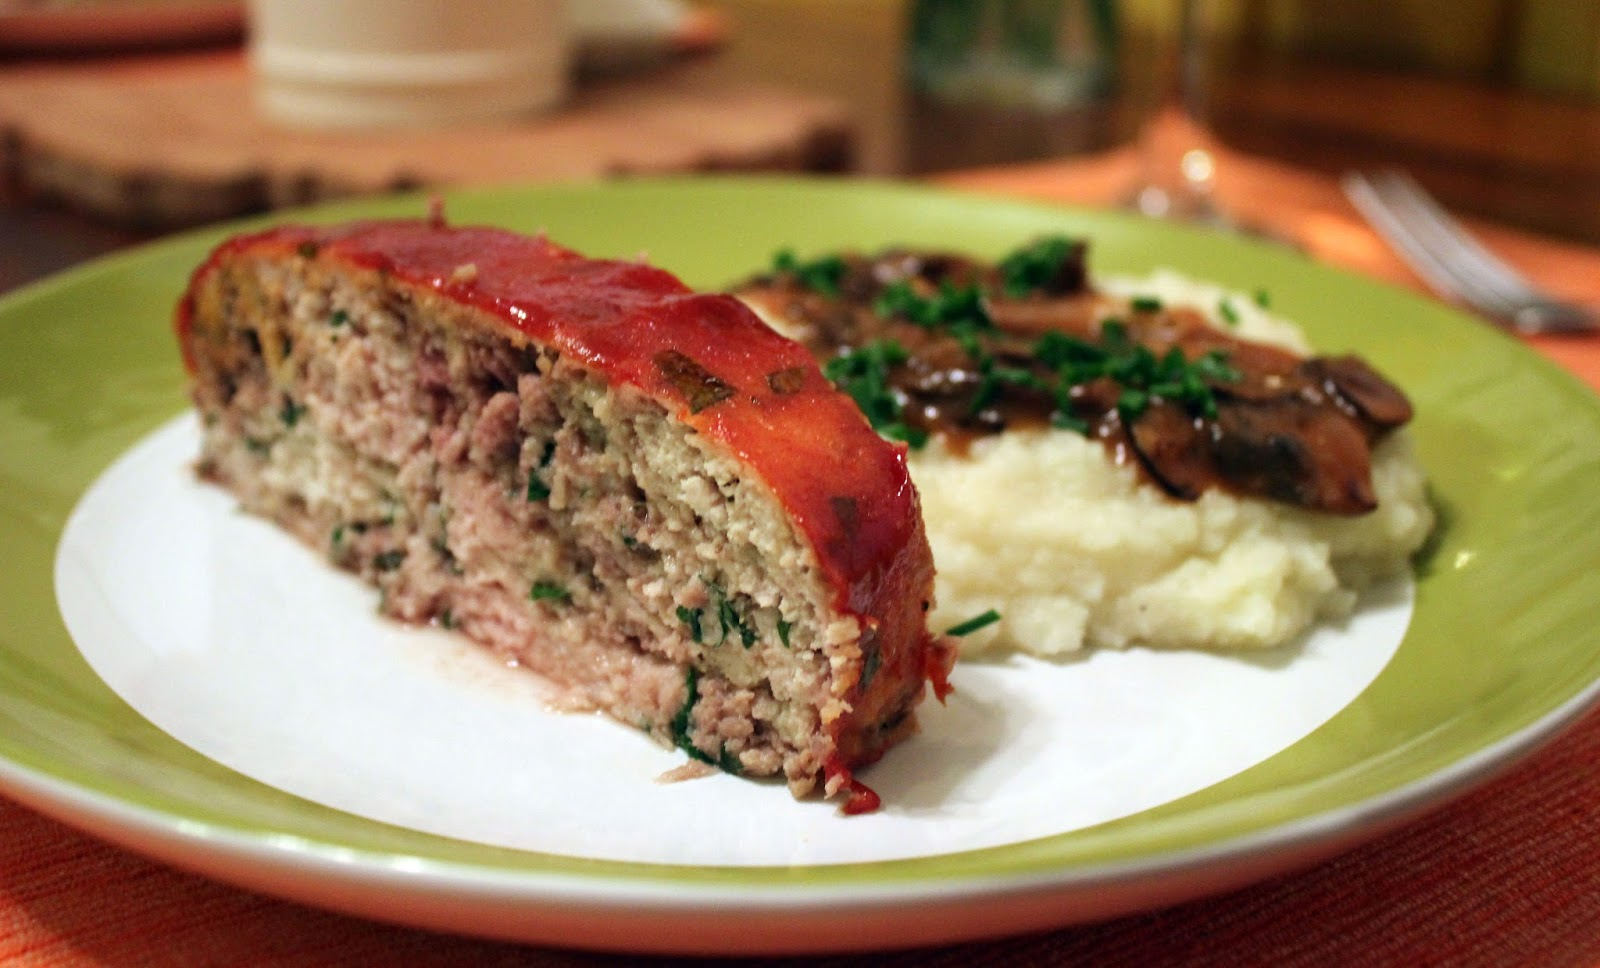 We served the meatloaf with Buttermilk Mashed Potatoes and Cauliflower ...